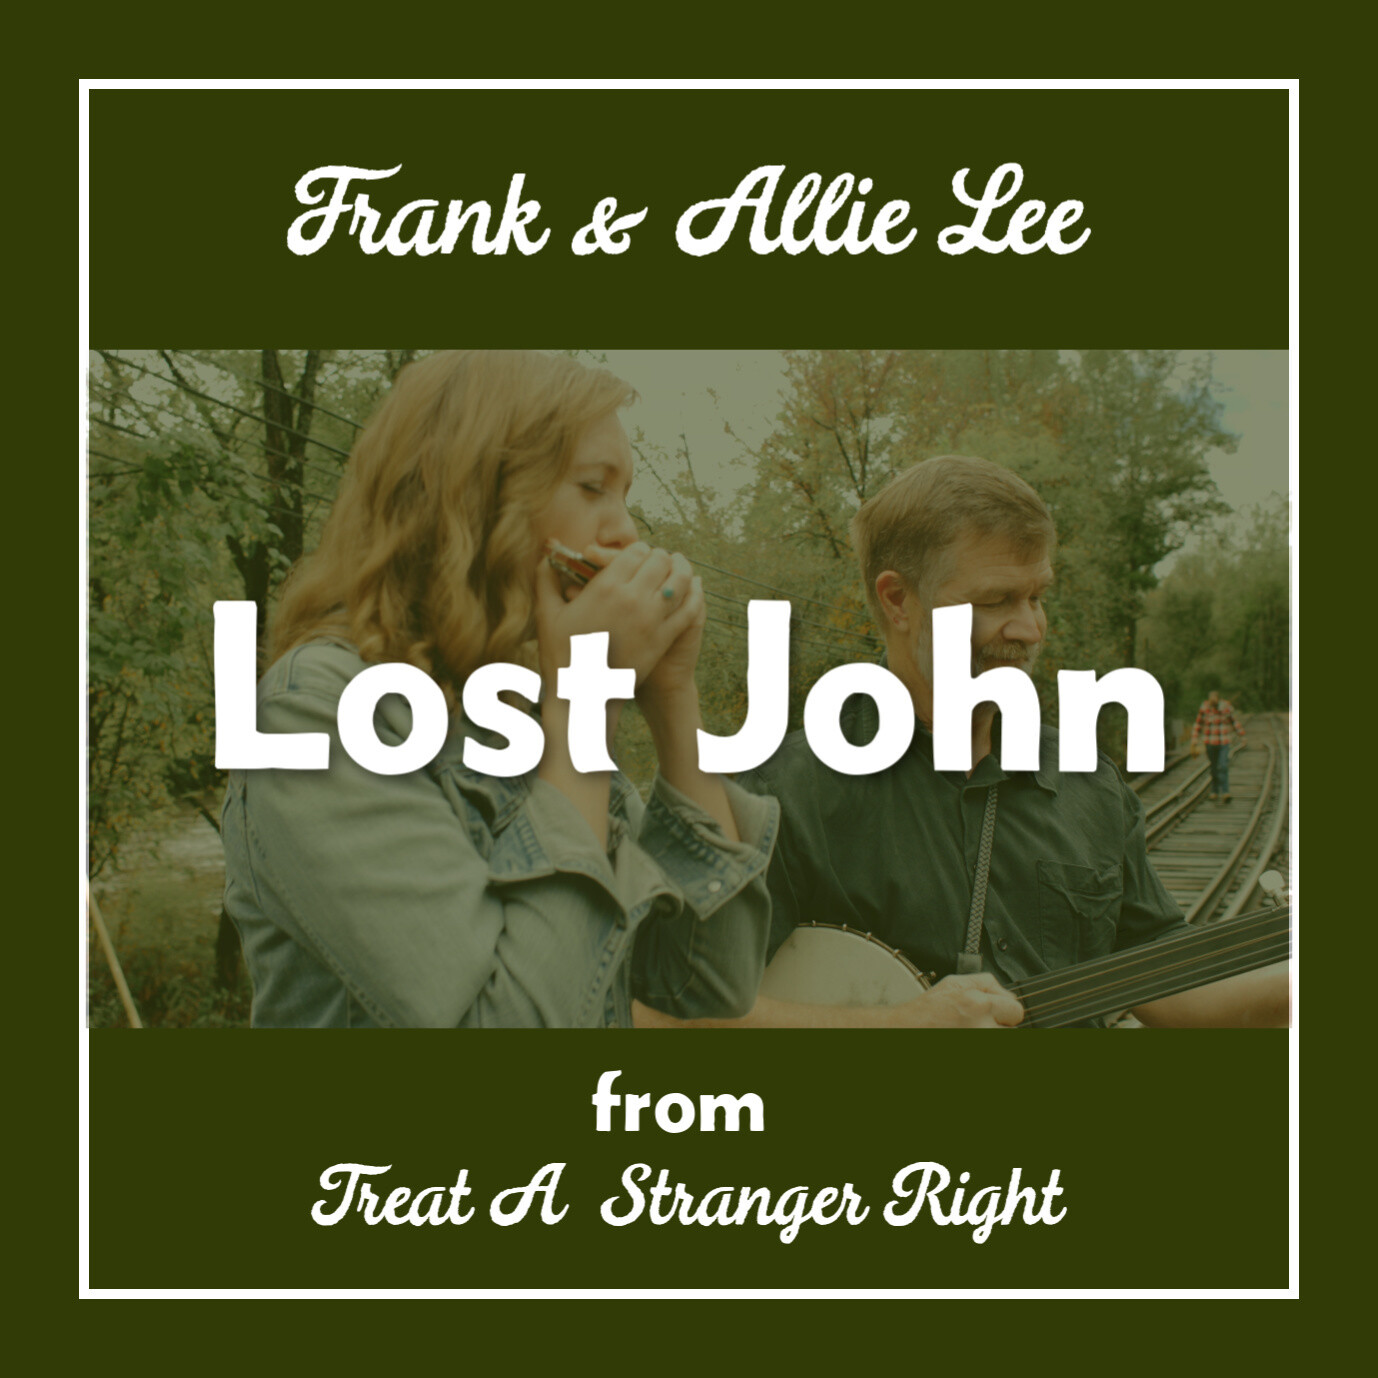 Lost John Single on CD with Jacket (originally made for DJs)